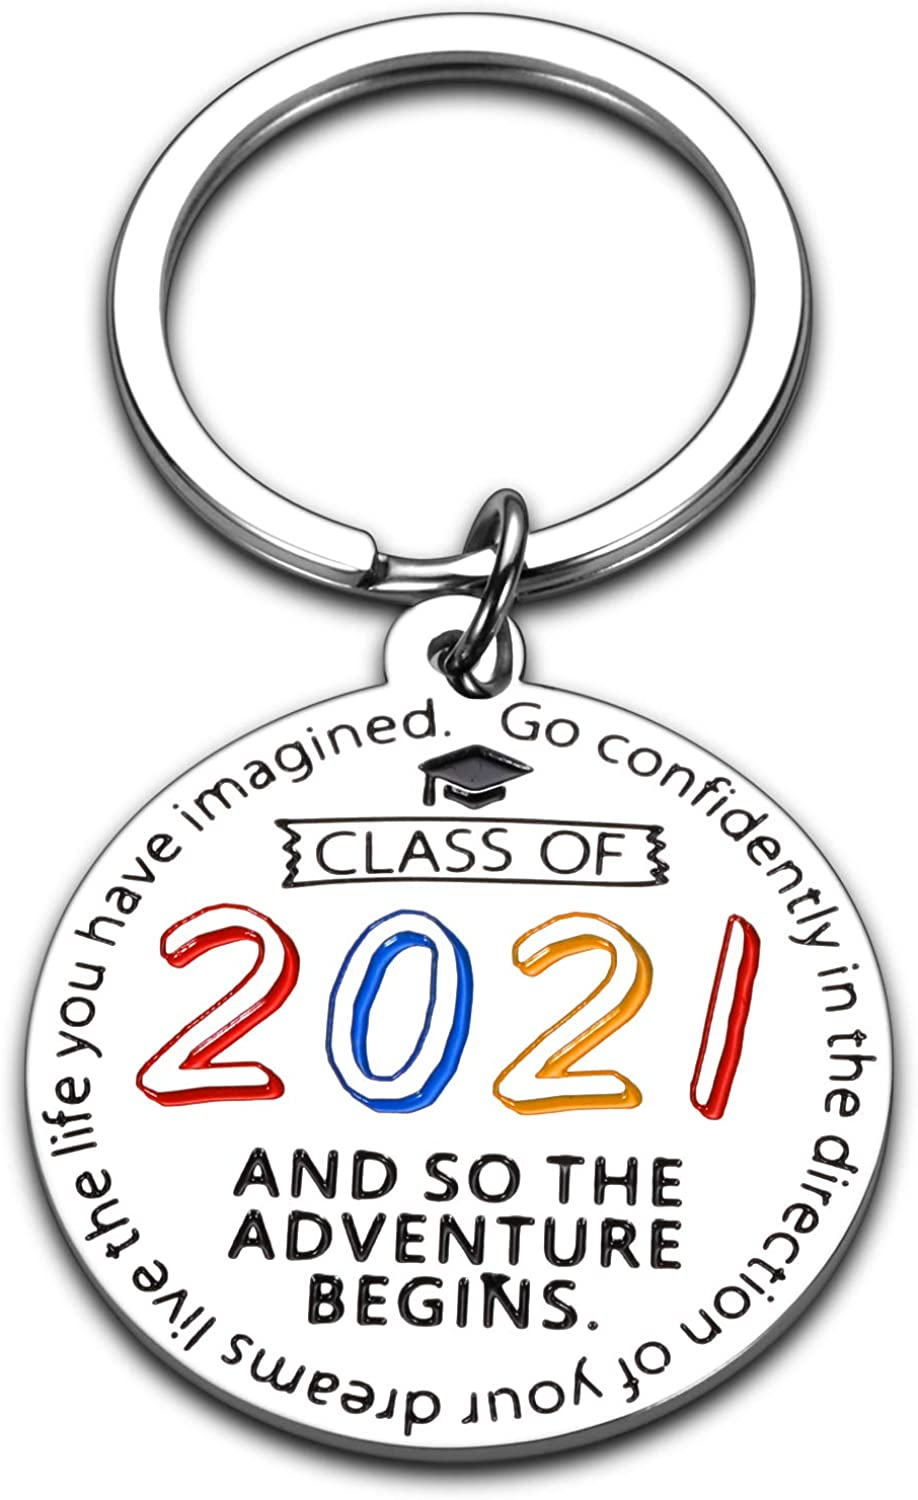 Class of 2021 Graduation Gifts Keychain for Him Her 2021 Inspirational Gifts for Boys Girls Son Daughter Friends Sisters Brothers High School College Graduates Nurse Students Teenagers from Mom Dad